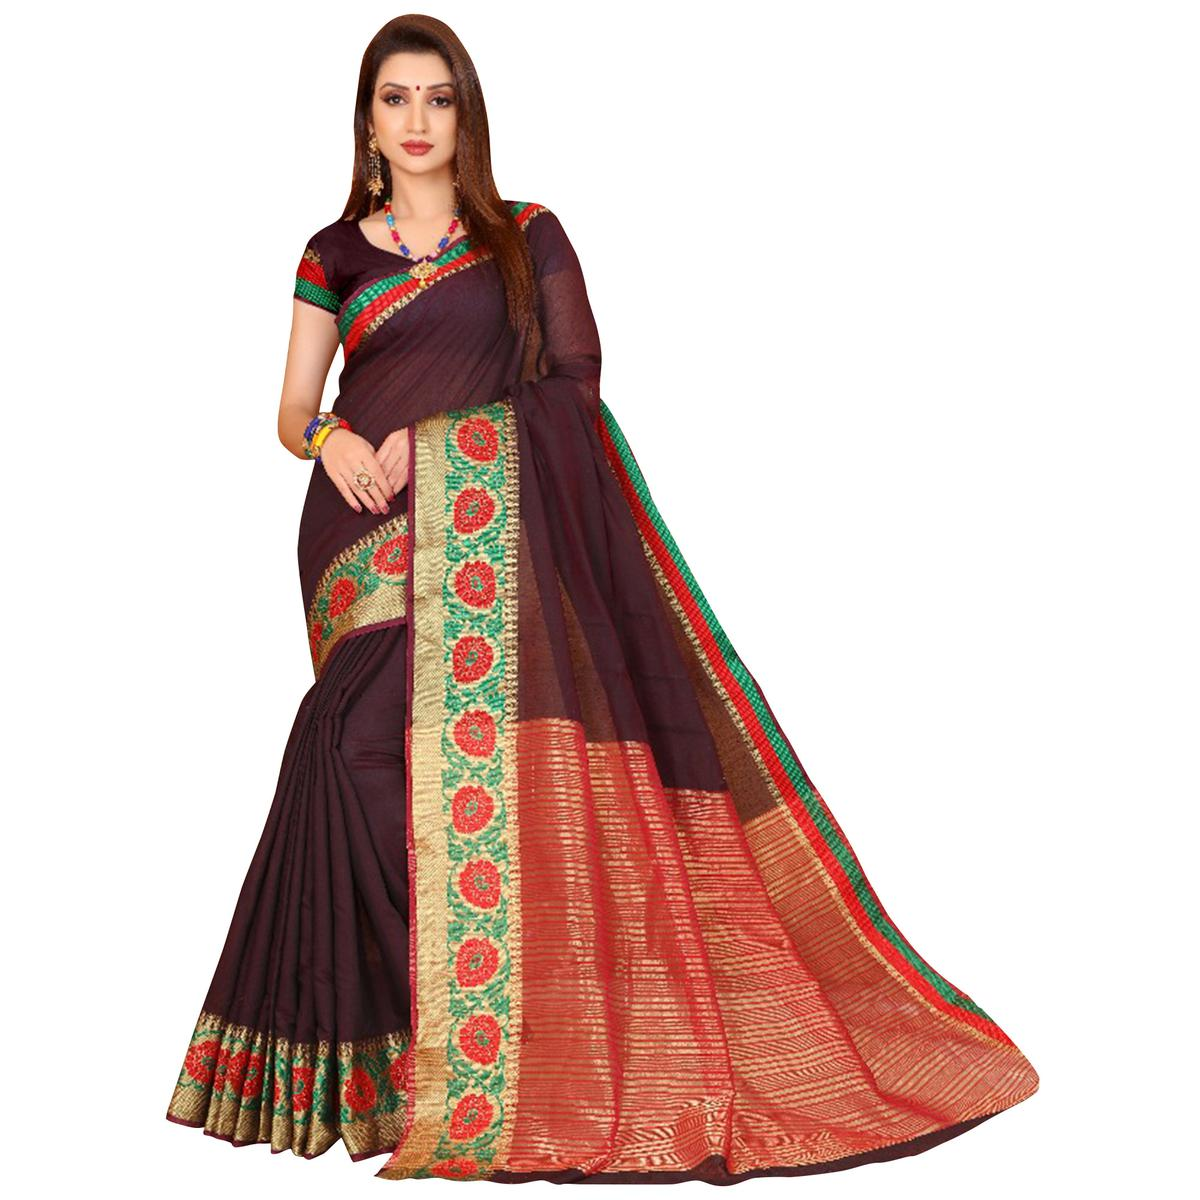 Dark Violet Colored Festive Wear Woven Cotton Saree